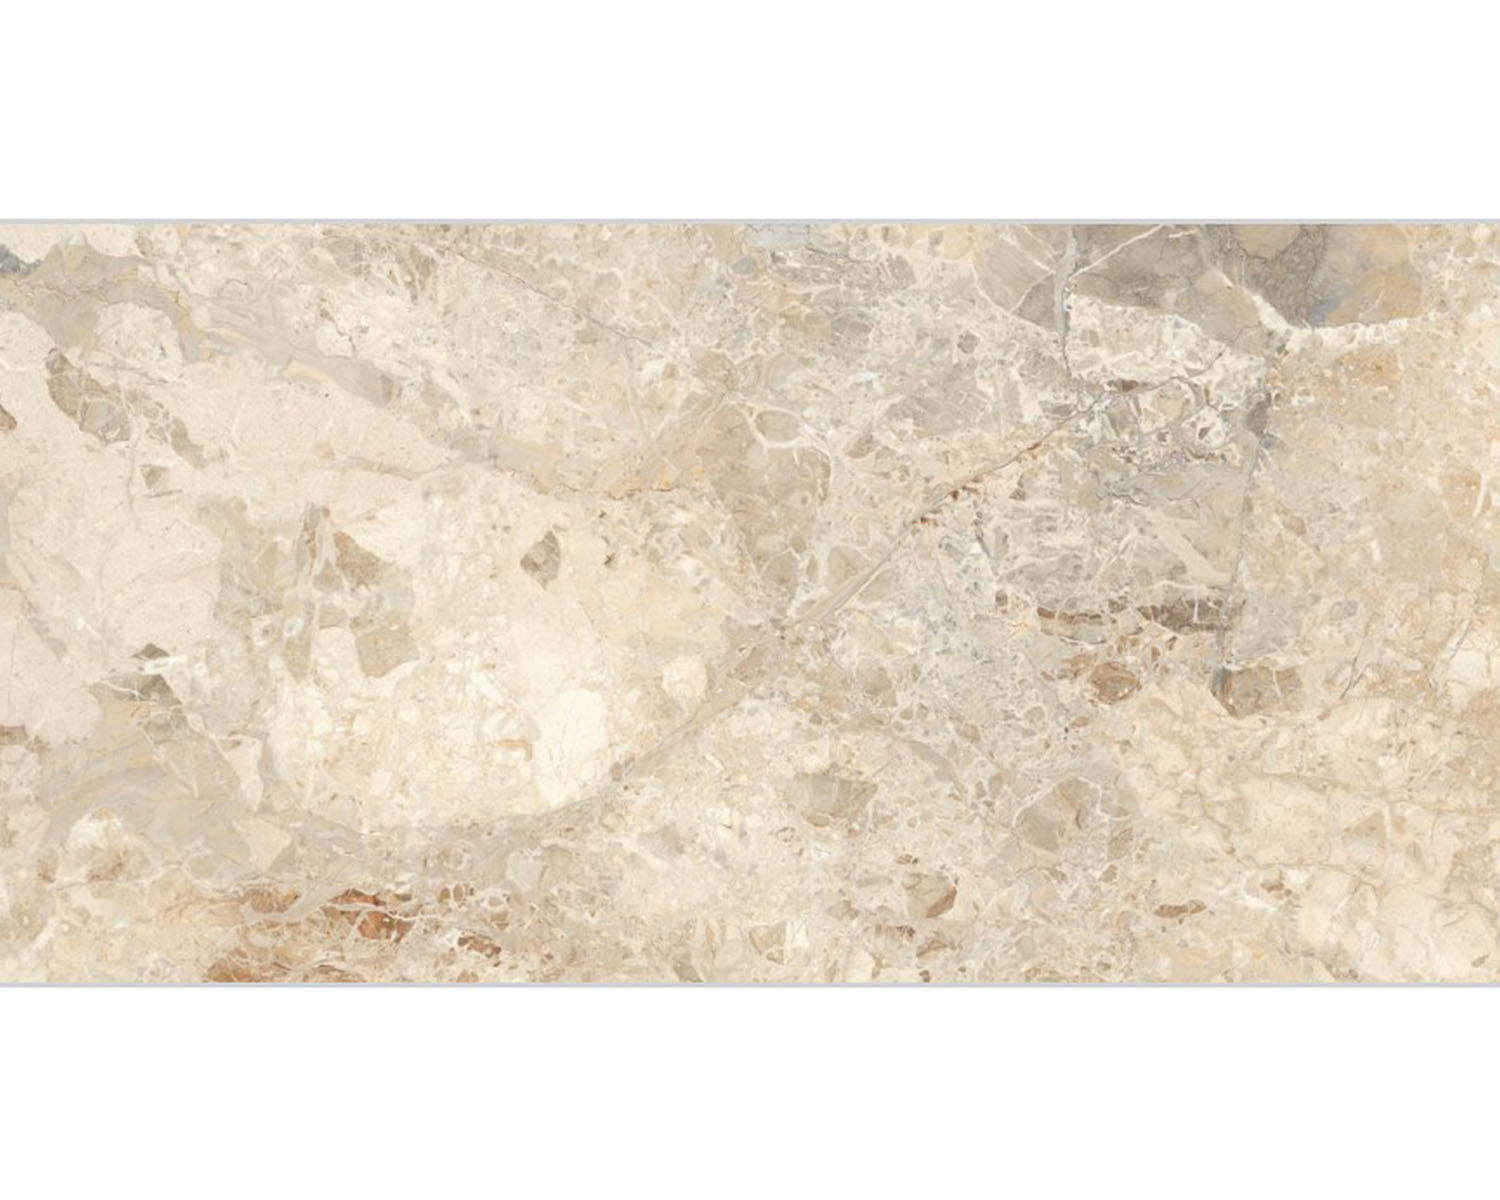 Floor Tiles Breccia Aurora Polished Floor Tiles 800 mm x 1600 mm